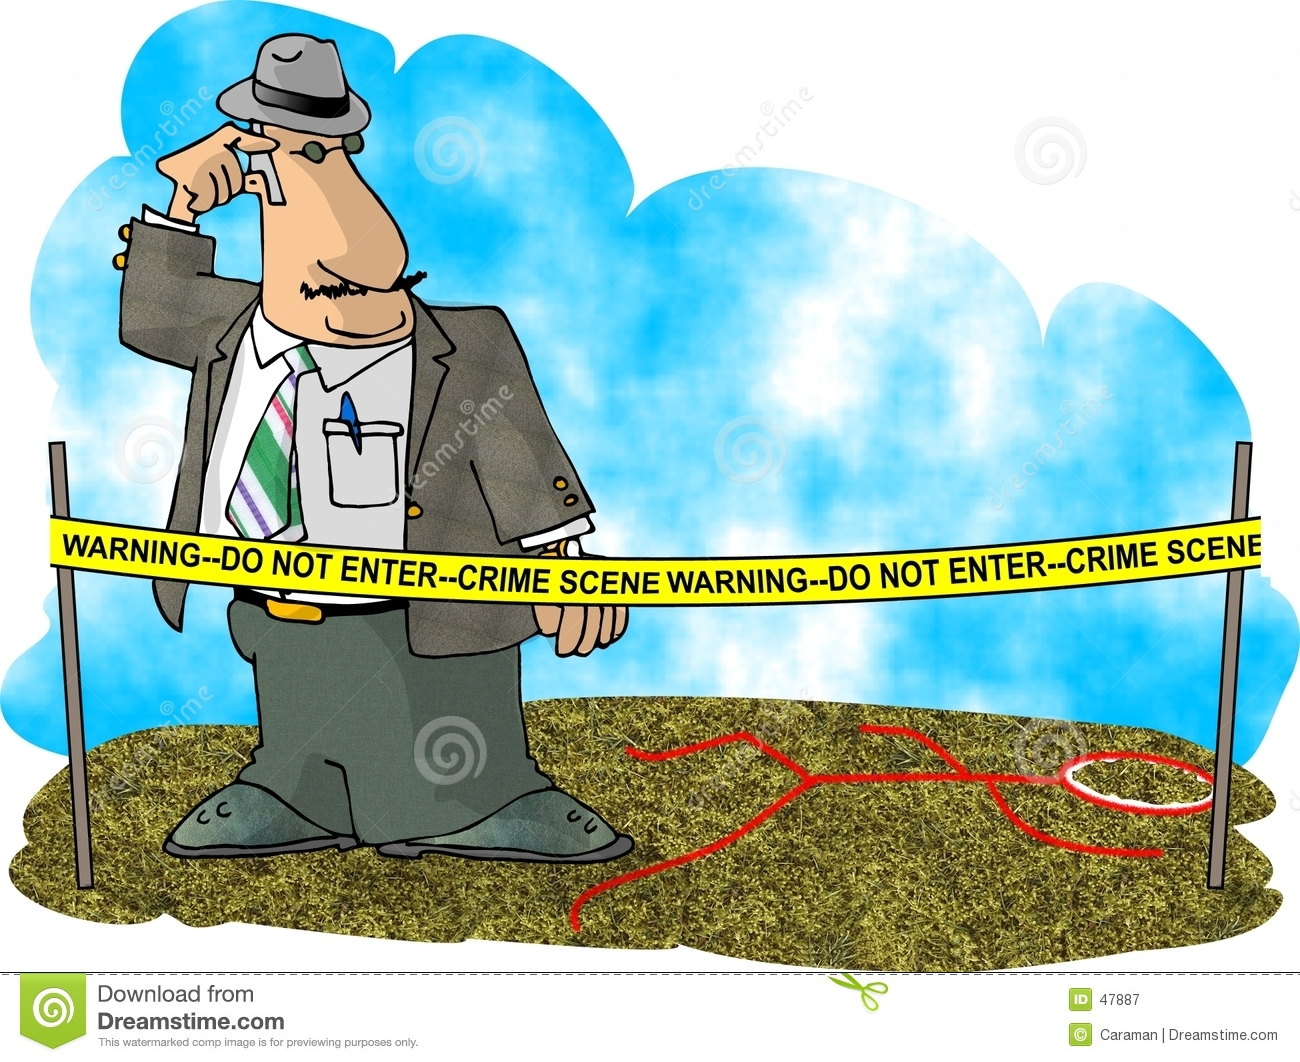 This Illustration That I Created Depicts A Crime Scene Investigator